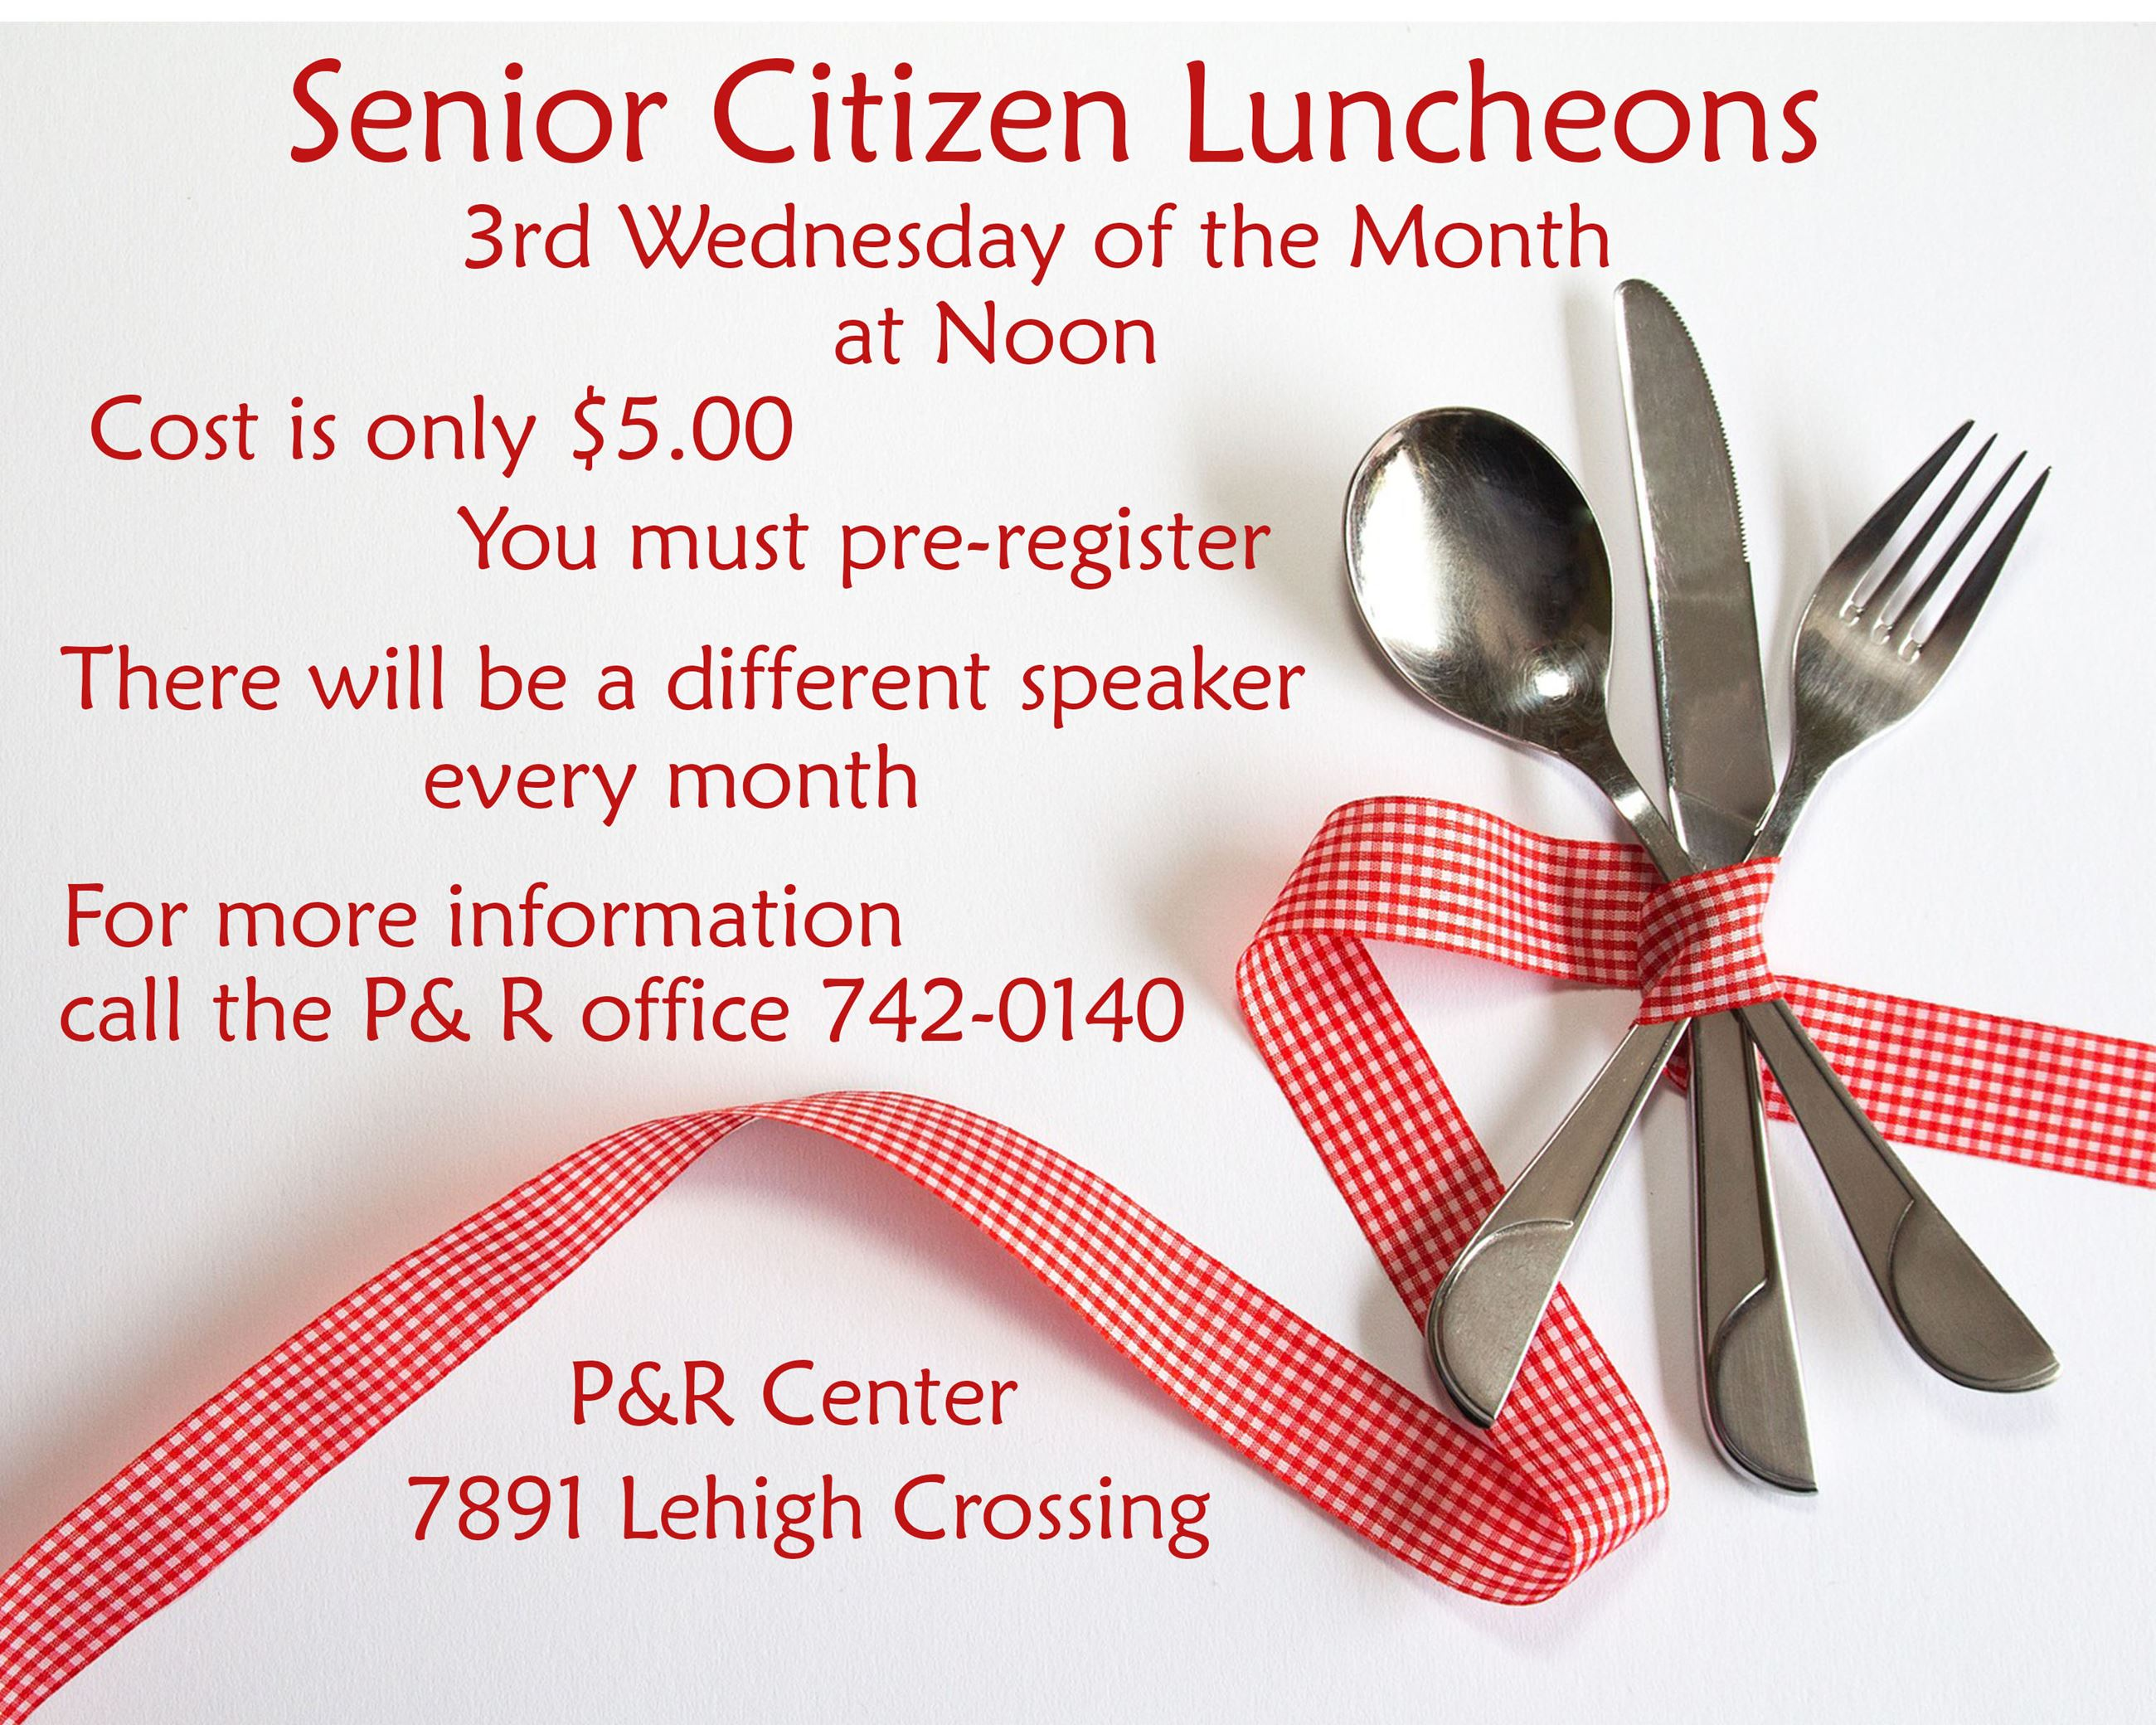 Senior Luncheon Sign with fork spoon knife and red check ribbon